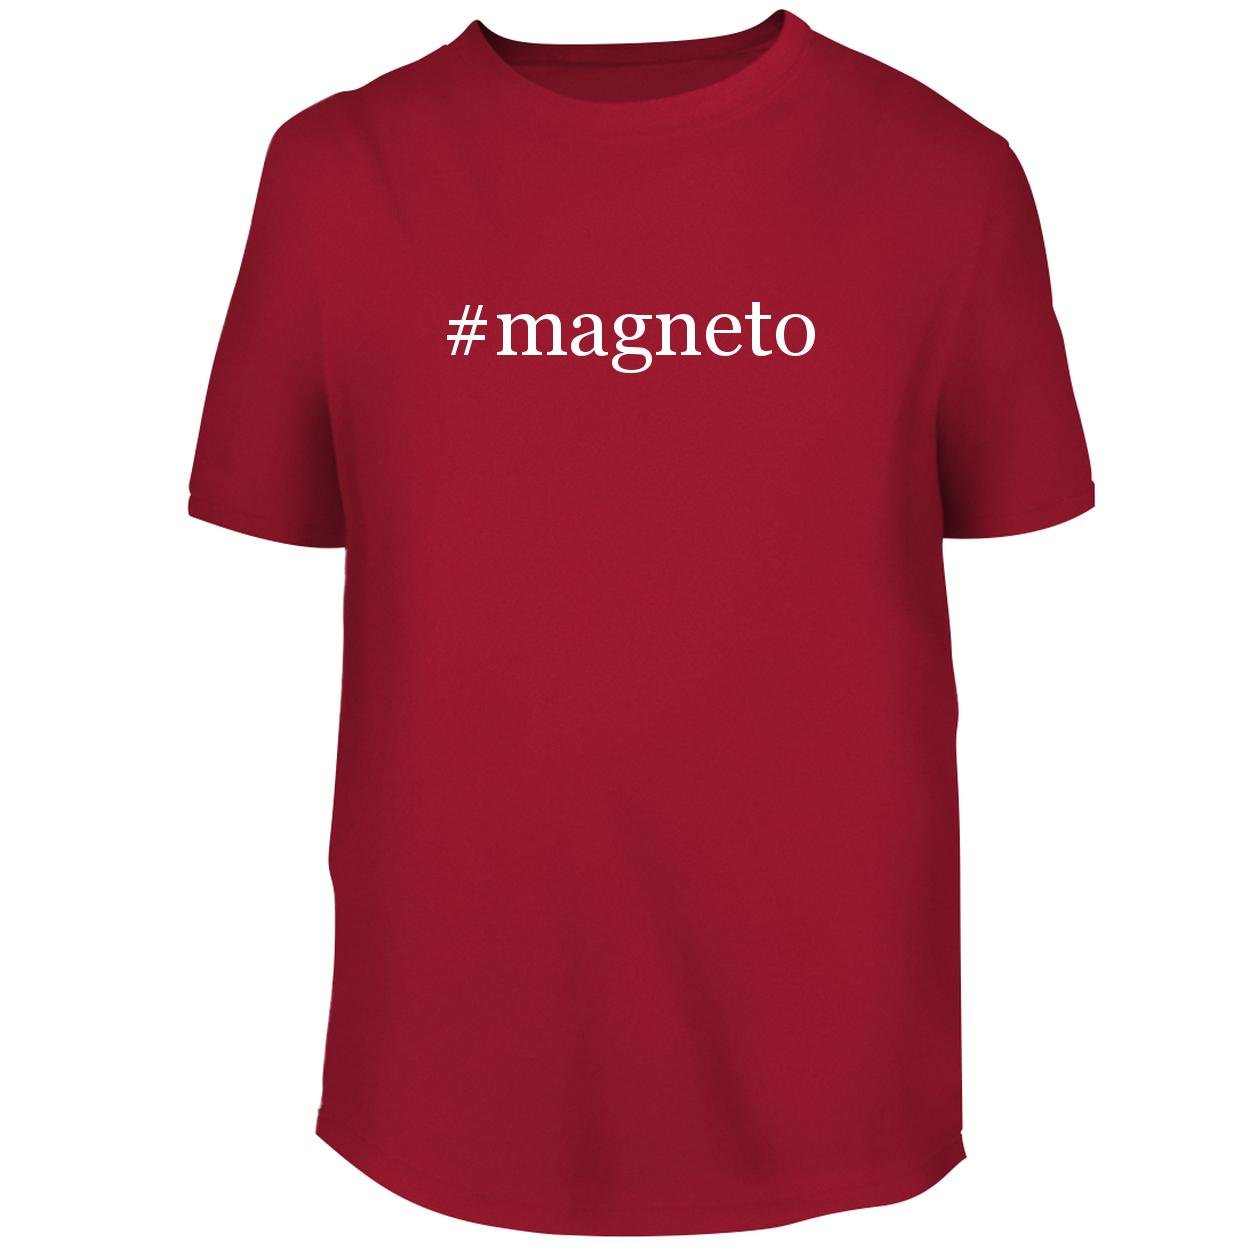 BH Cool Designs #Magneto - Men's Graphic Tee, Red, XX-Large by BH Cool Designs